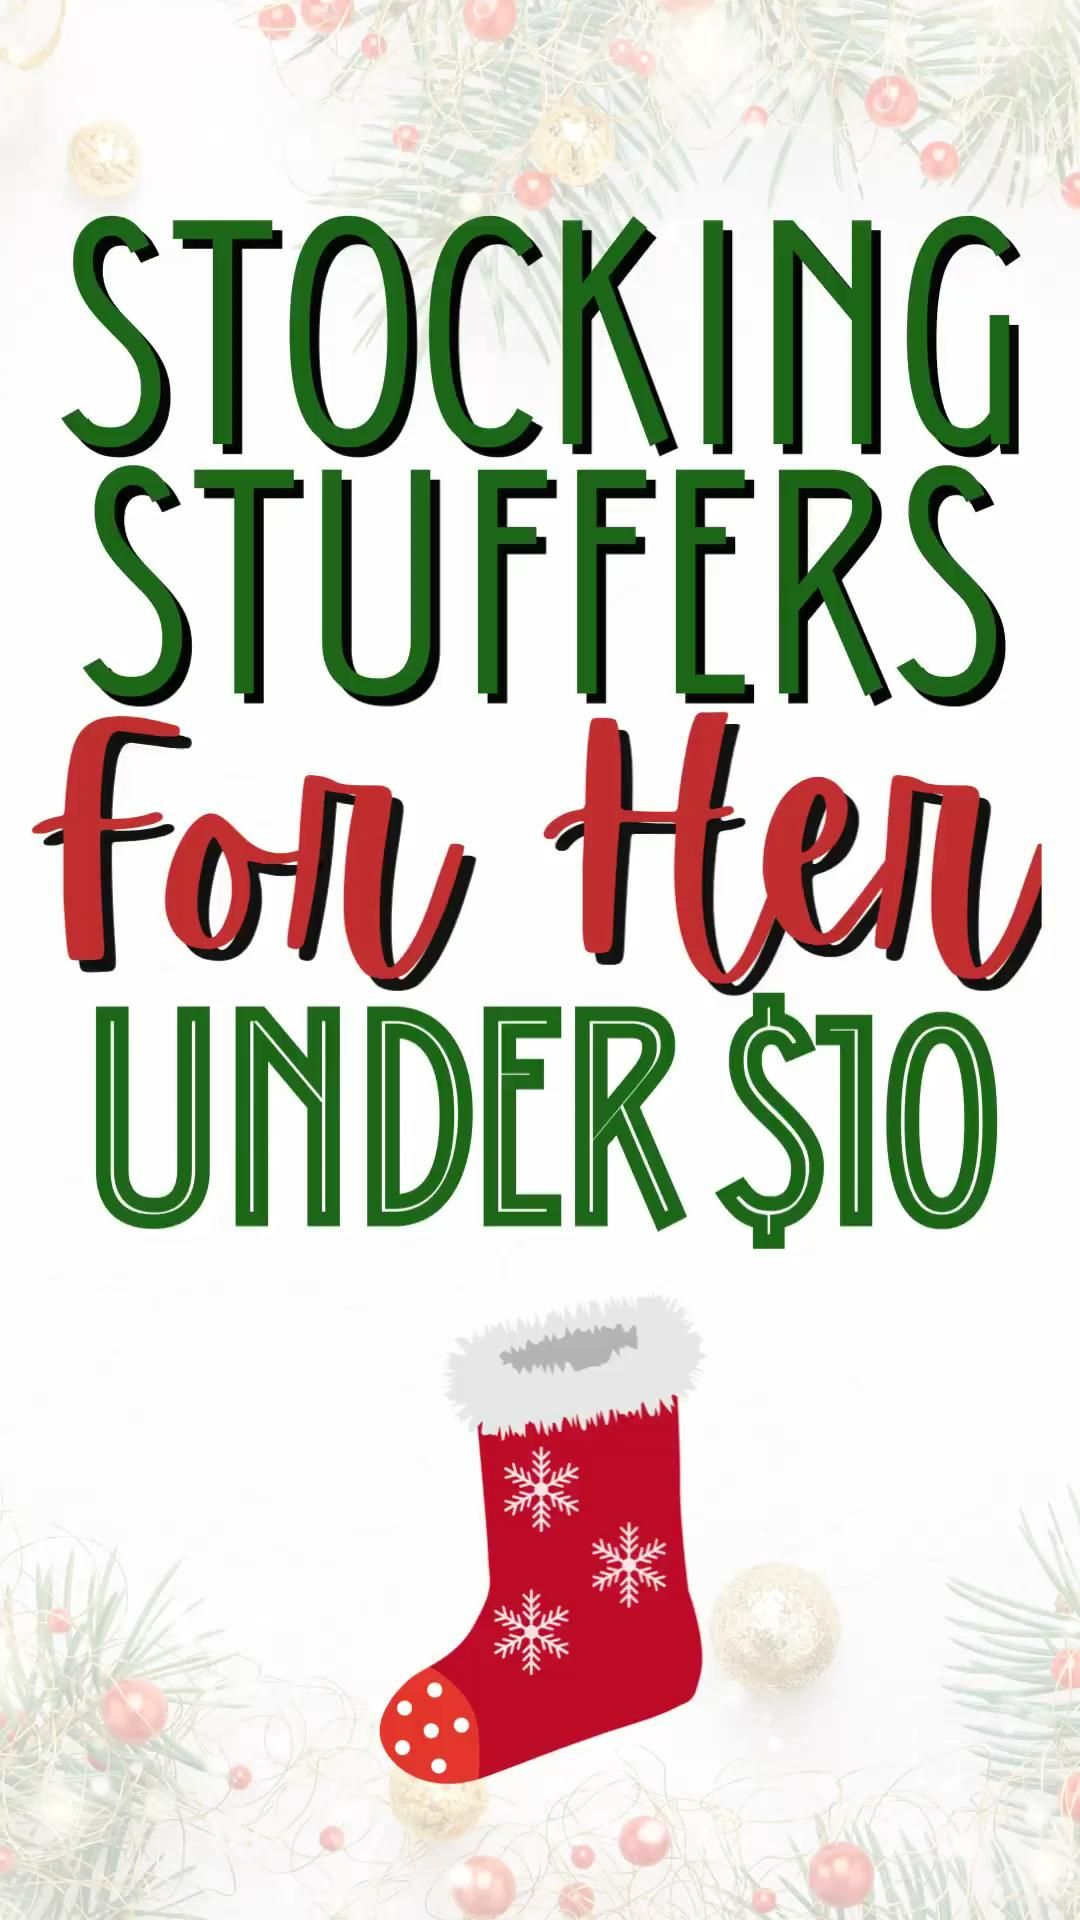 Stocking Stuffers for Her - All under $10!